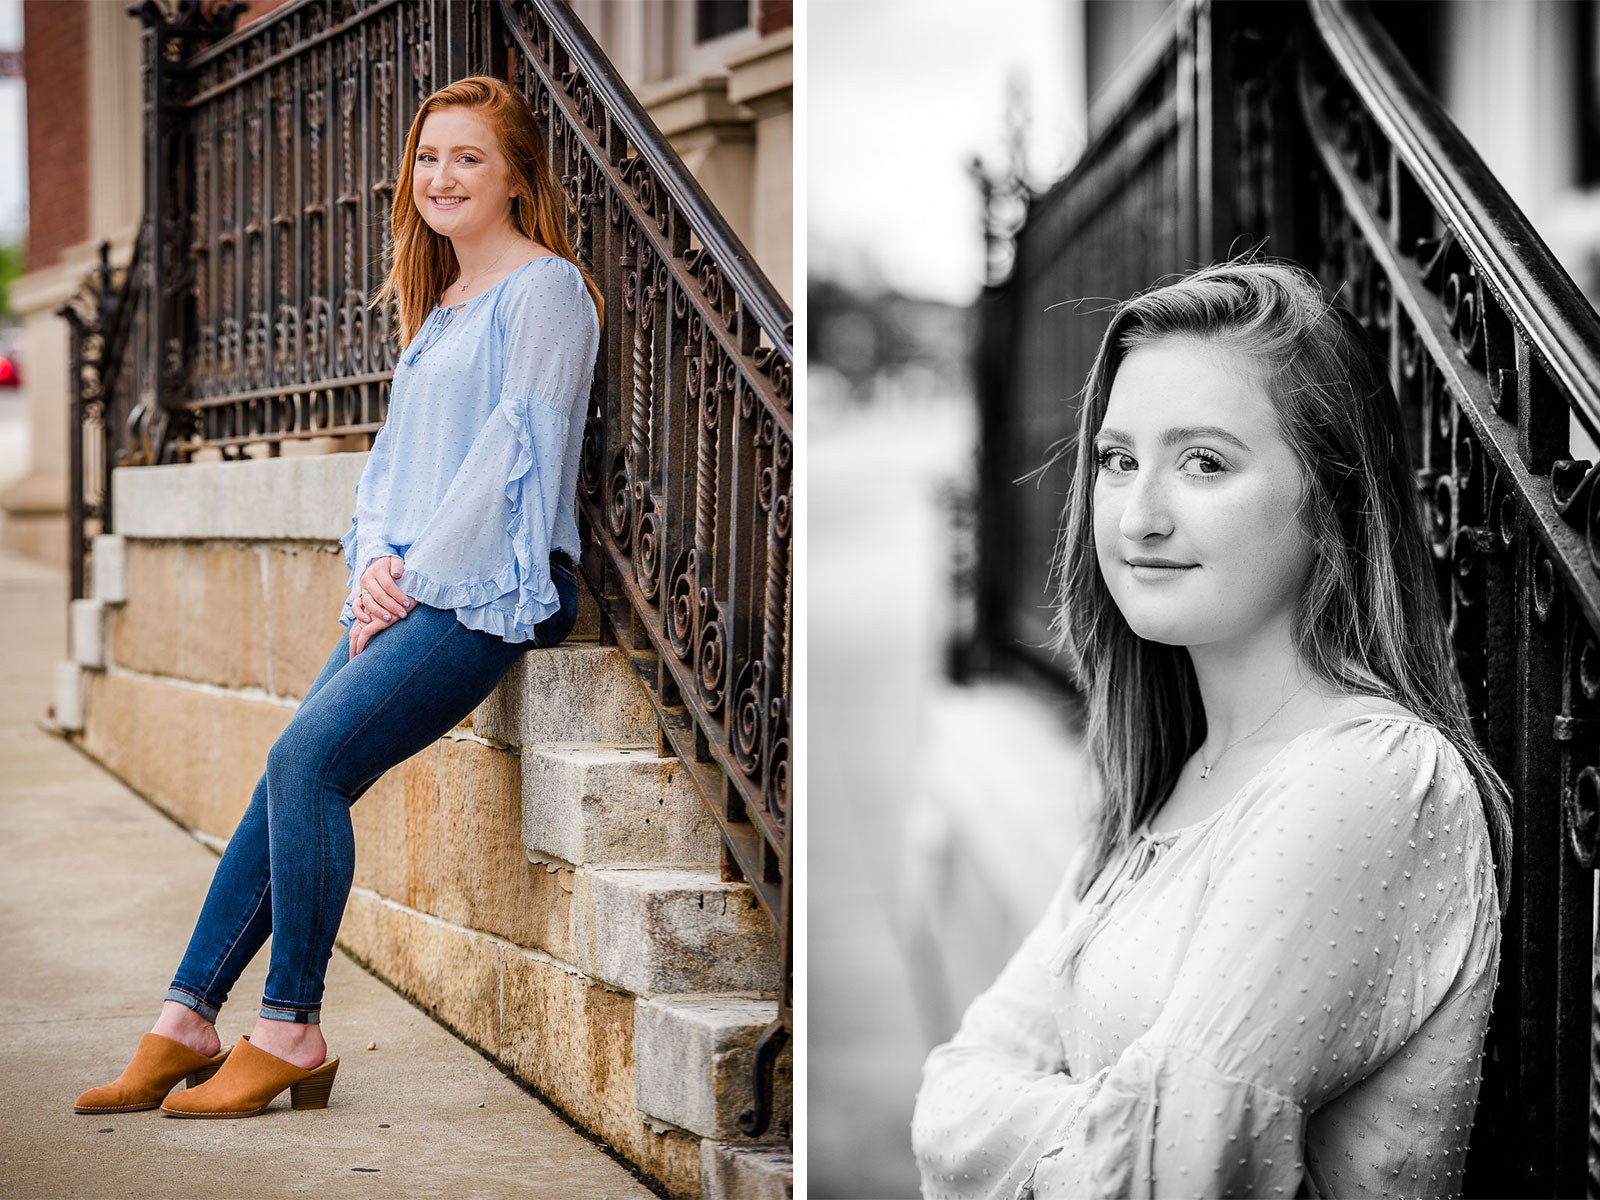 Eric_and_Christy_Photography_Blog_Brenna_Dray_Grad-21-22